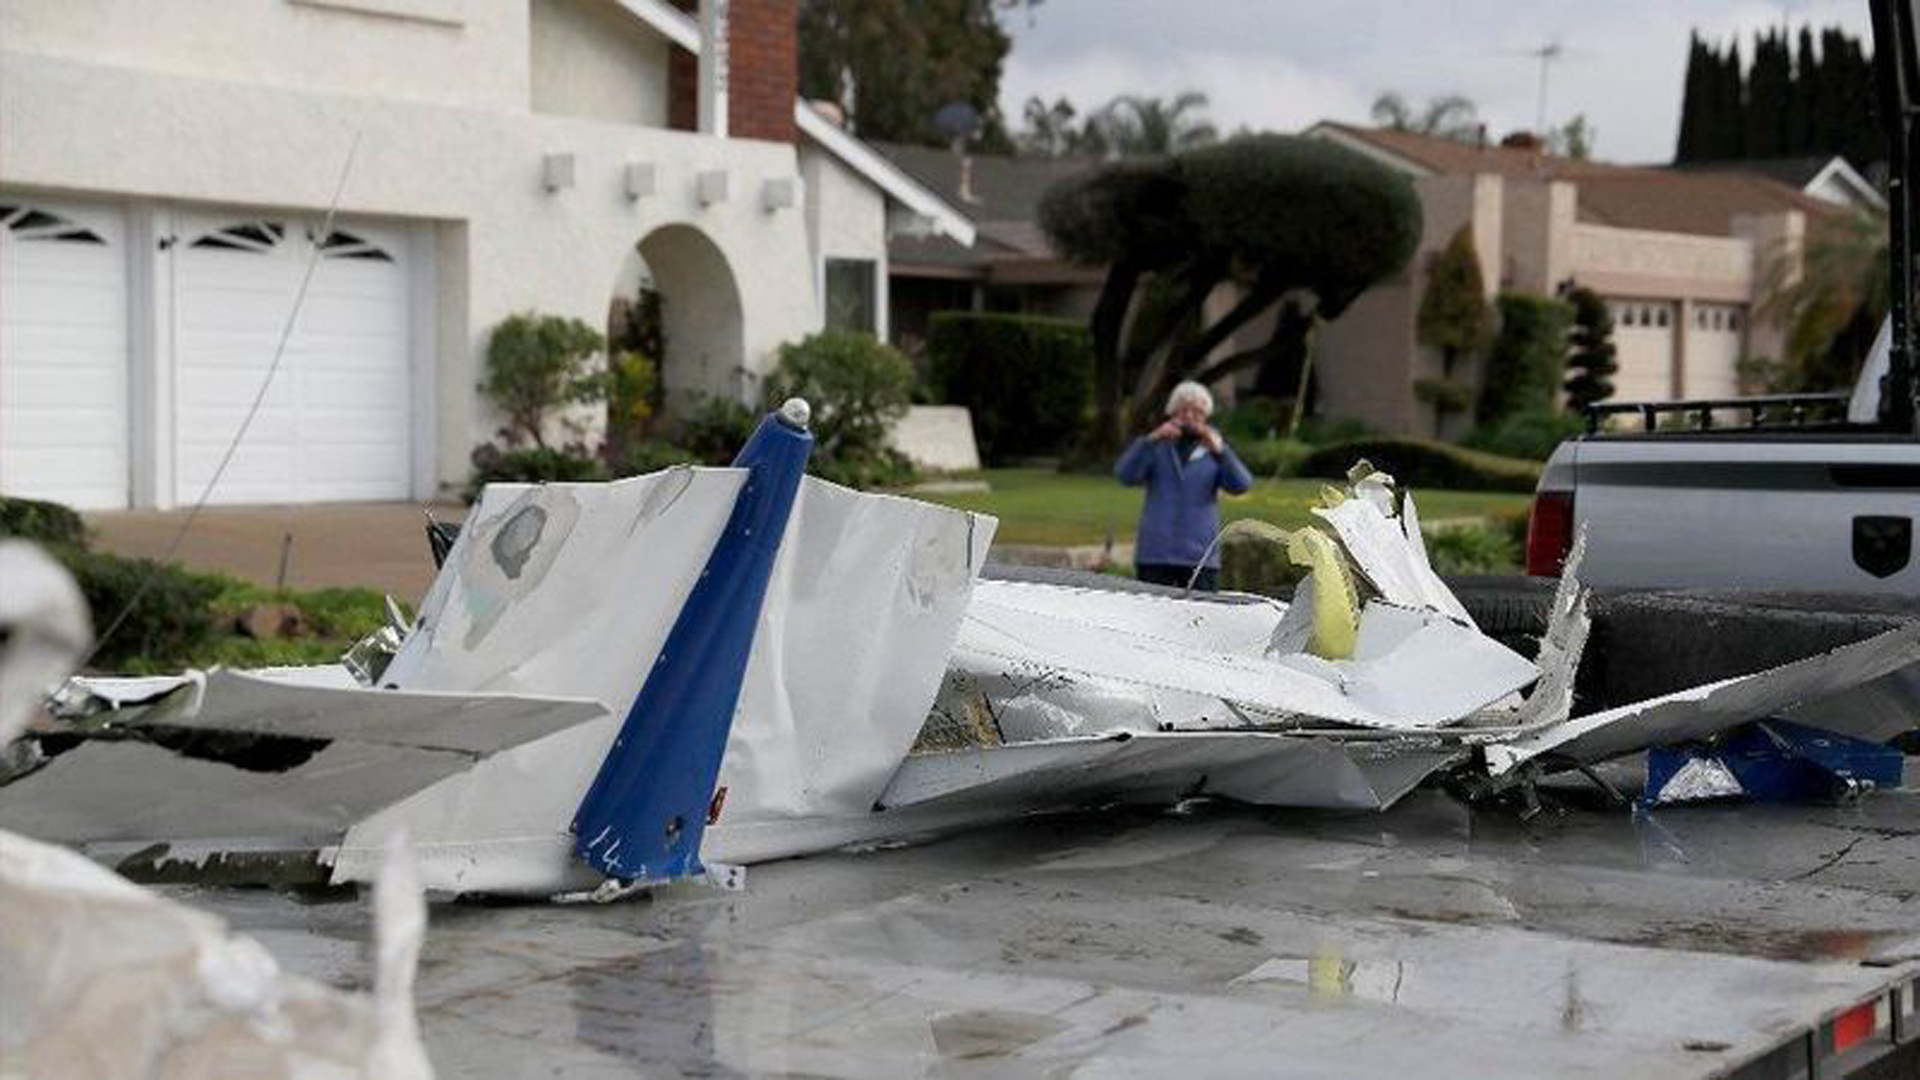 A woman takes a photo of airplane parts that landed on her property as workers remove wreckage after the crash of a Cessna airplane in Yorba Linda on Sunday, killing the pilot and four people inside a home. (Credit: Allen J. Schaben / Los Angeles Times)